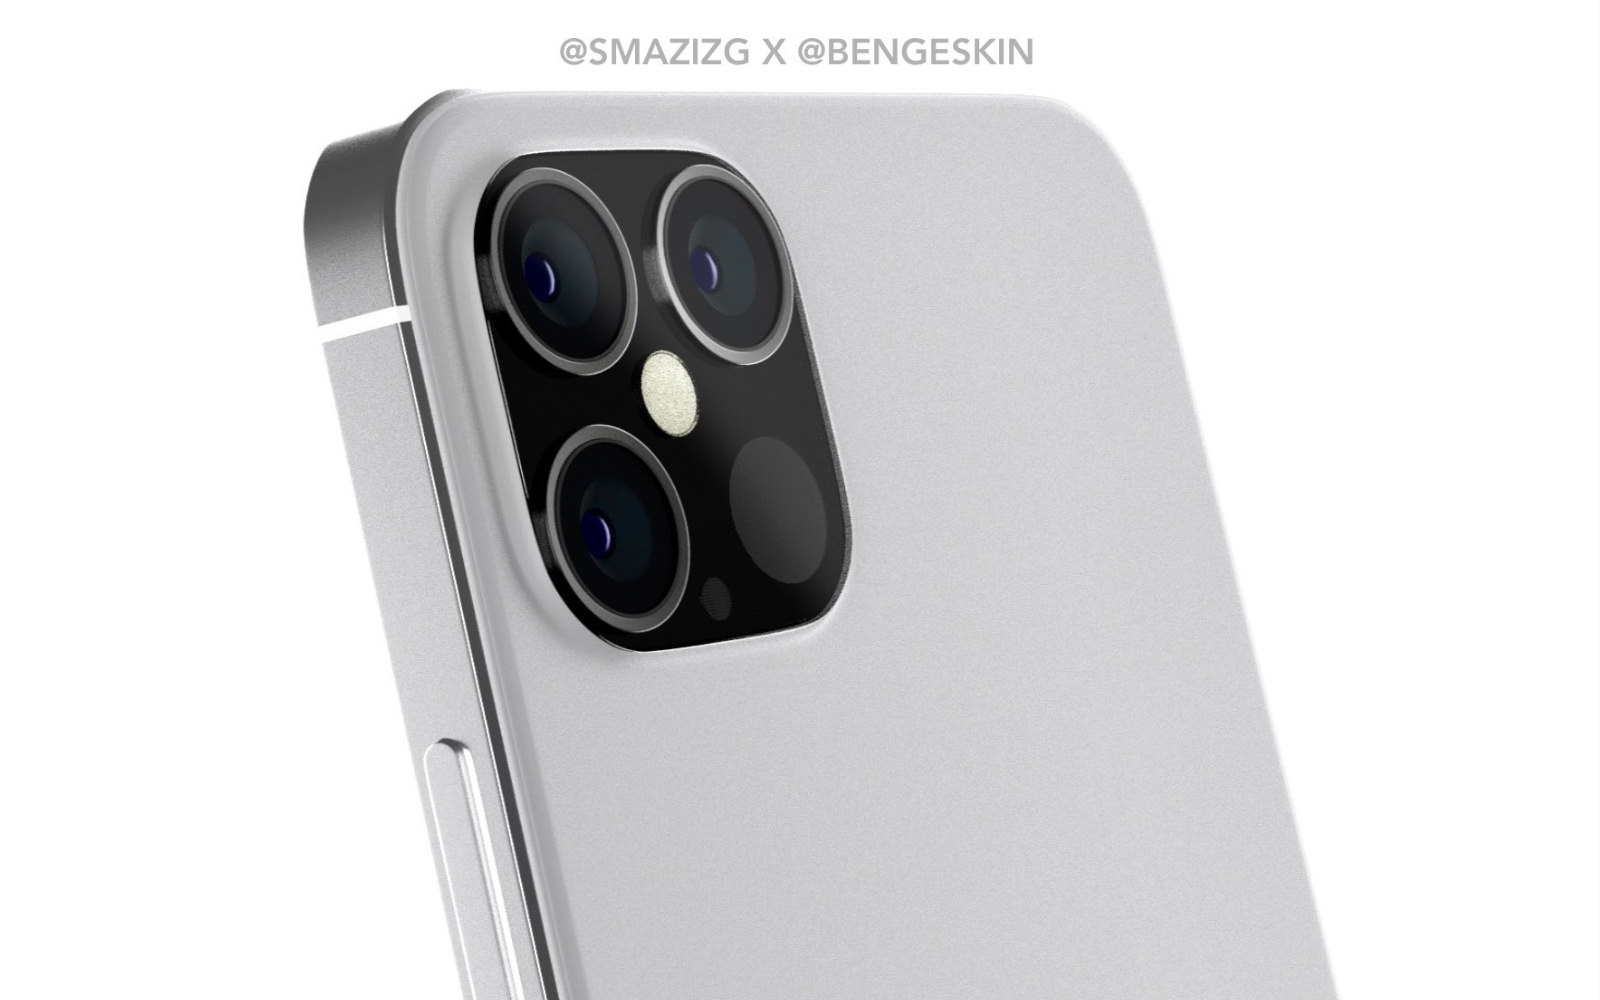 Iphone 12 concept by bengeskin